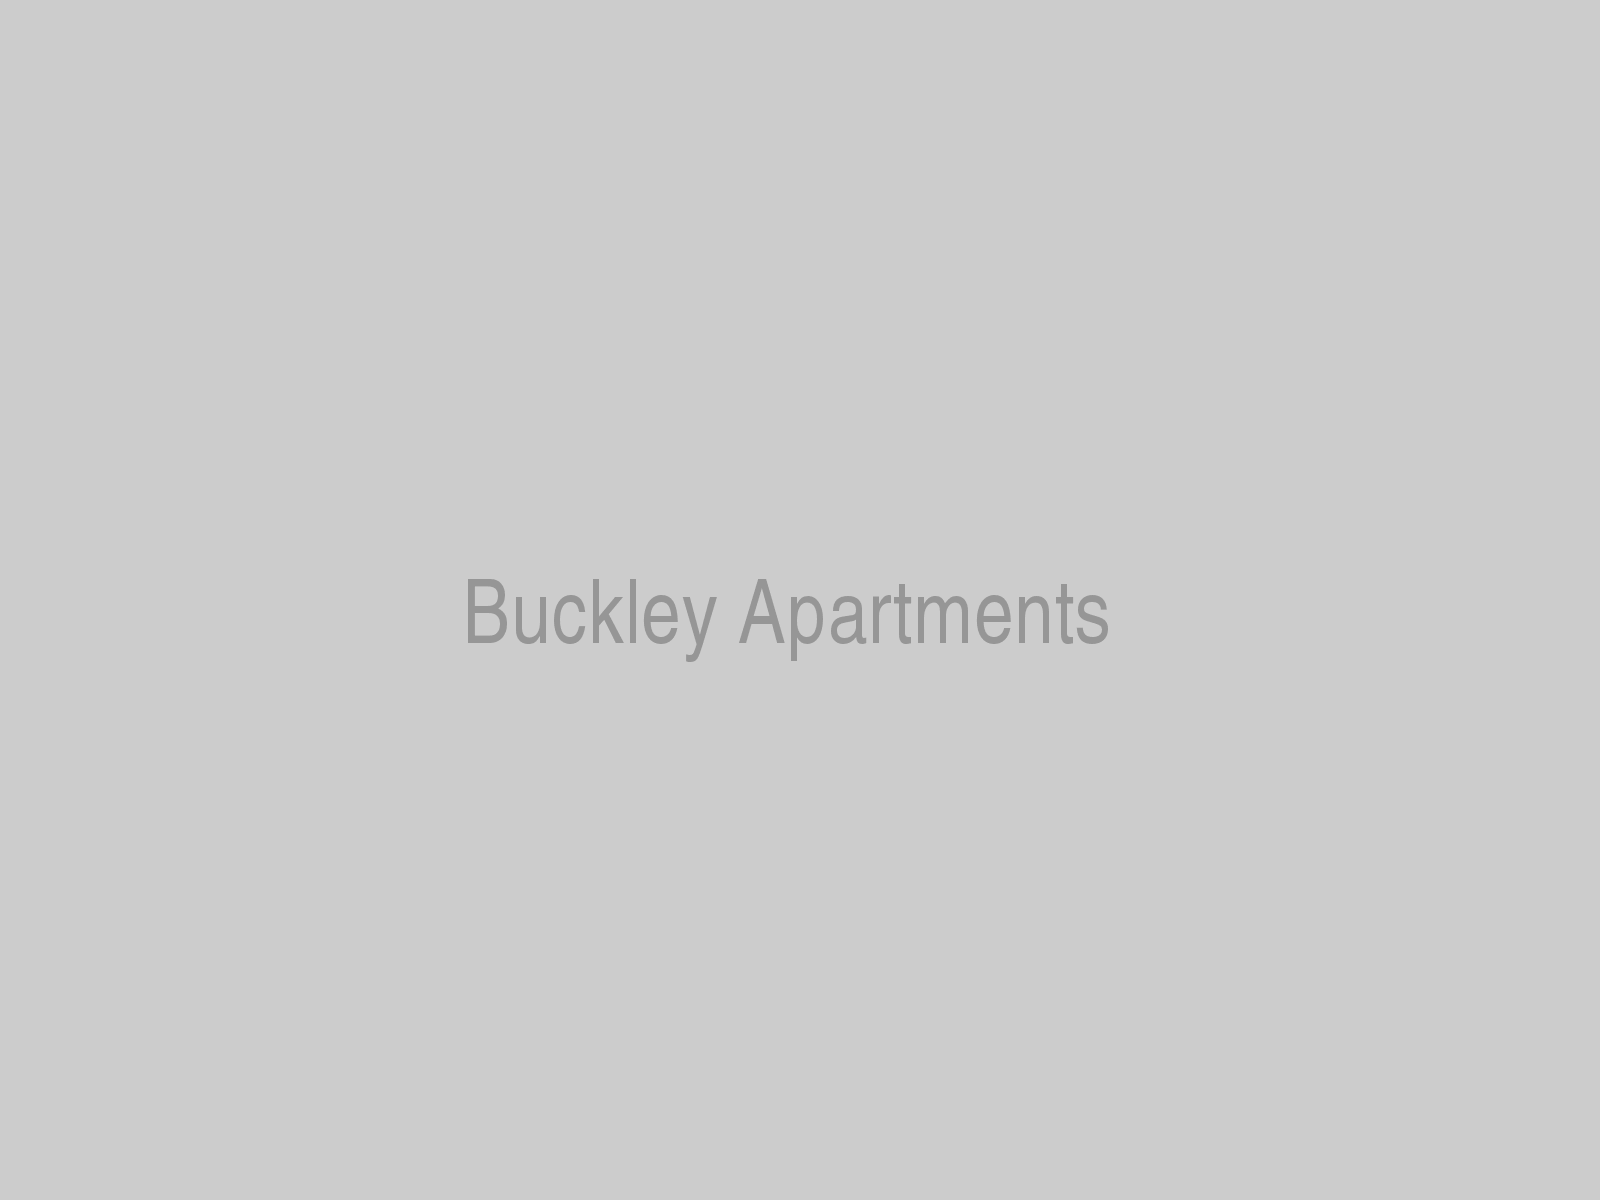 Buckley Apartments